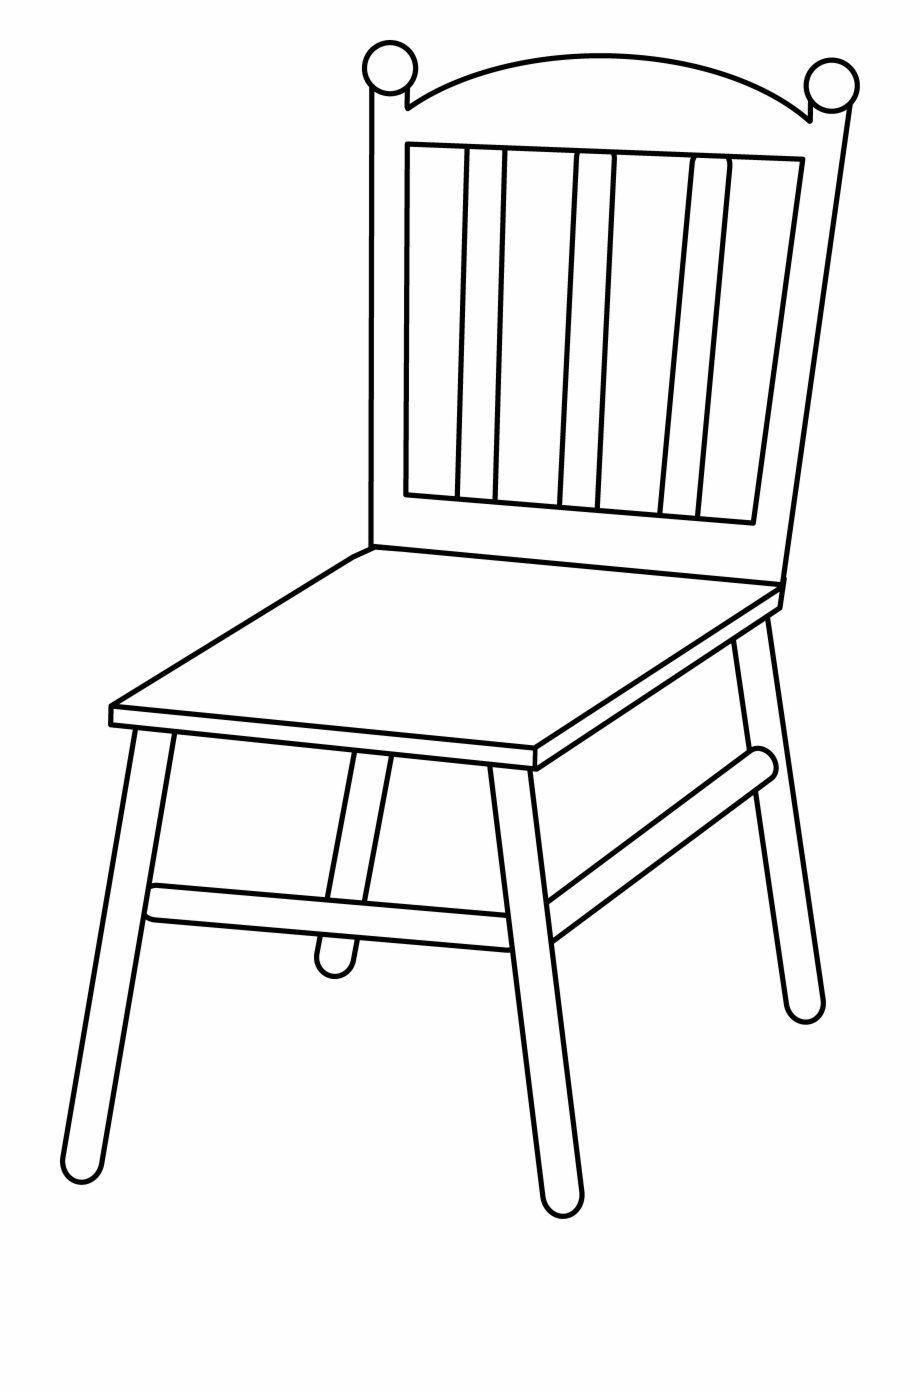 Line art transparent background. Chair clipart black and white